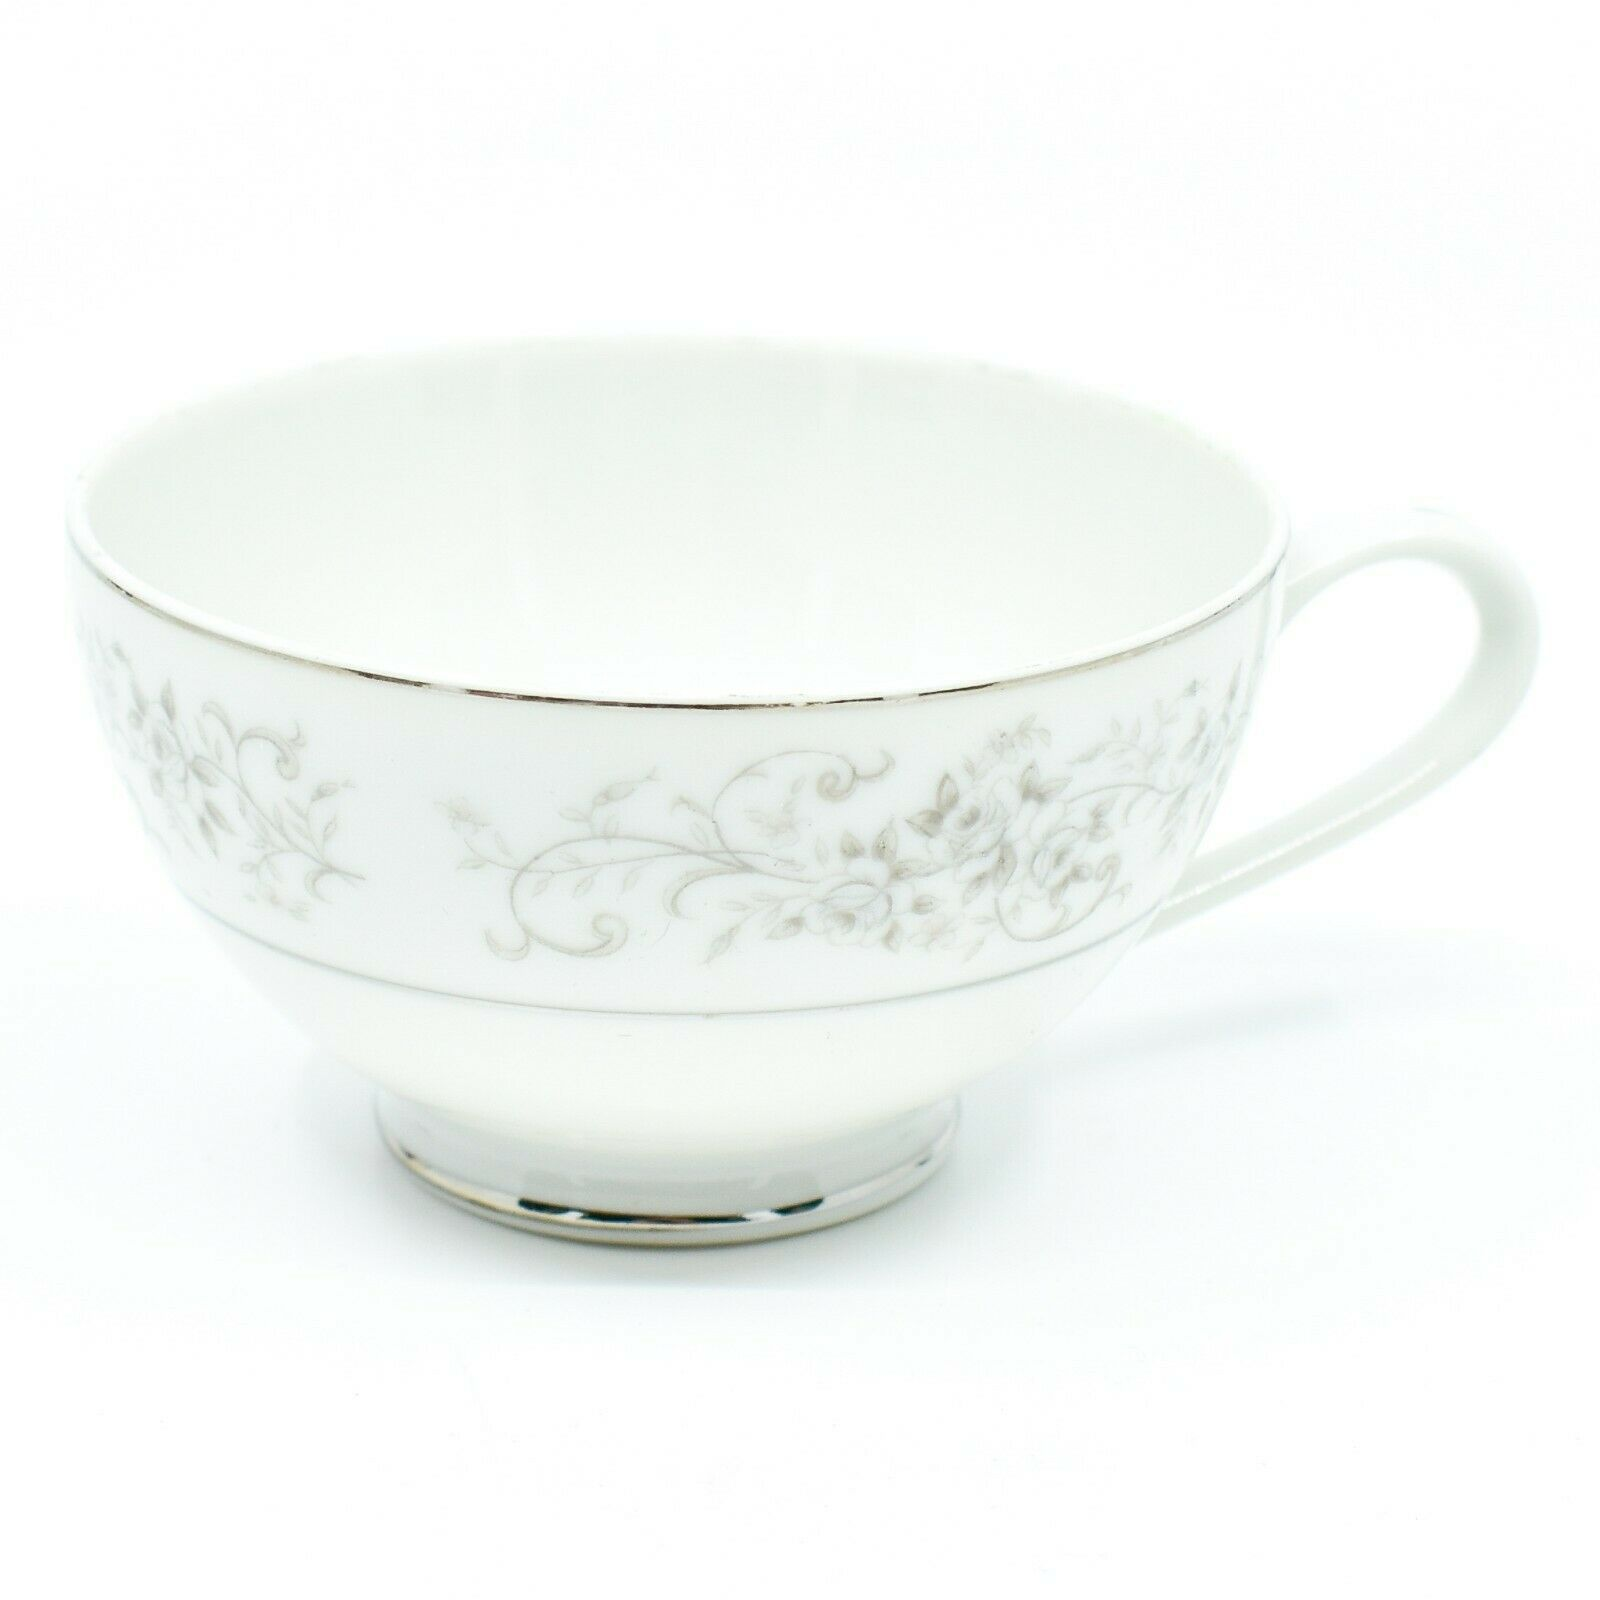 Camelot China Carrousel 1315 Teacup Tea Cup Made in Japan